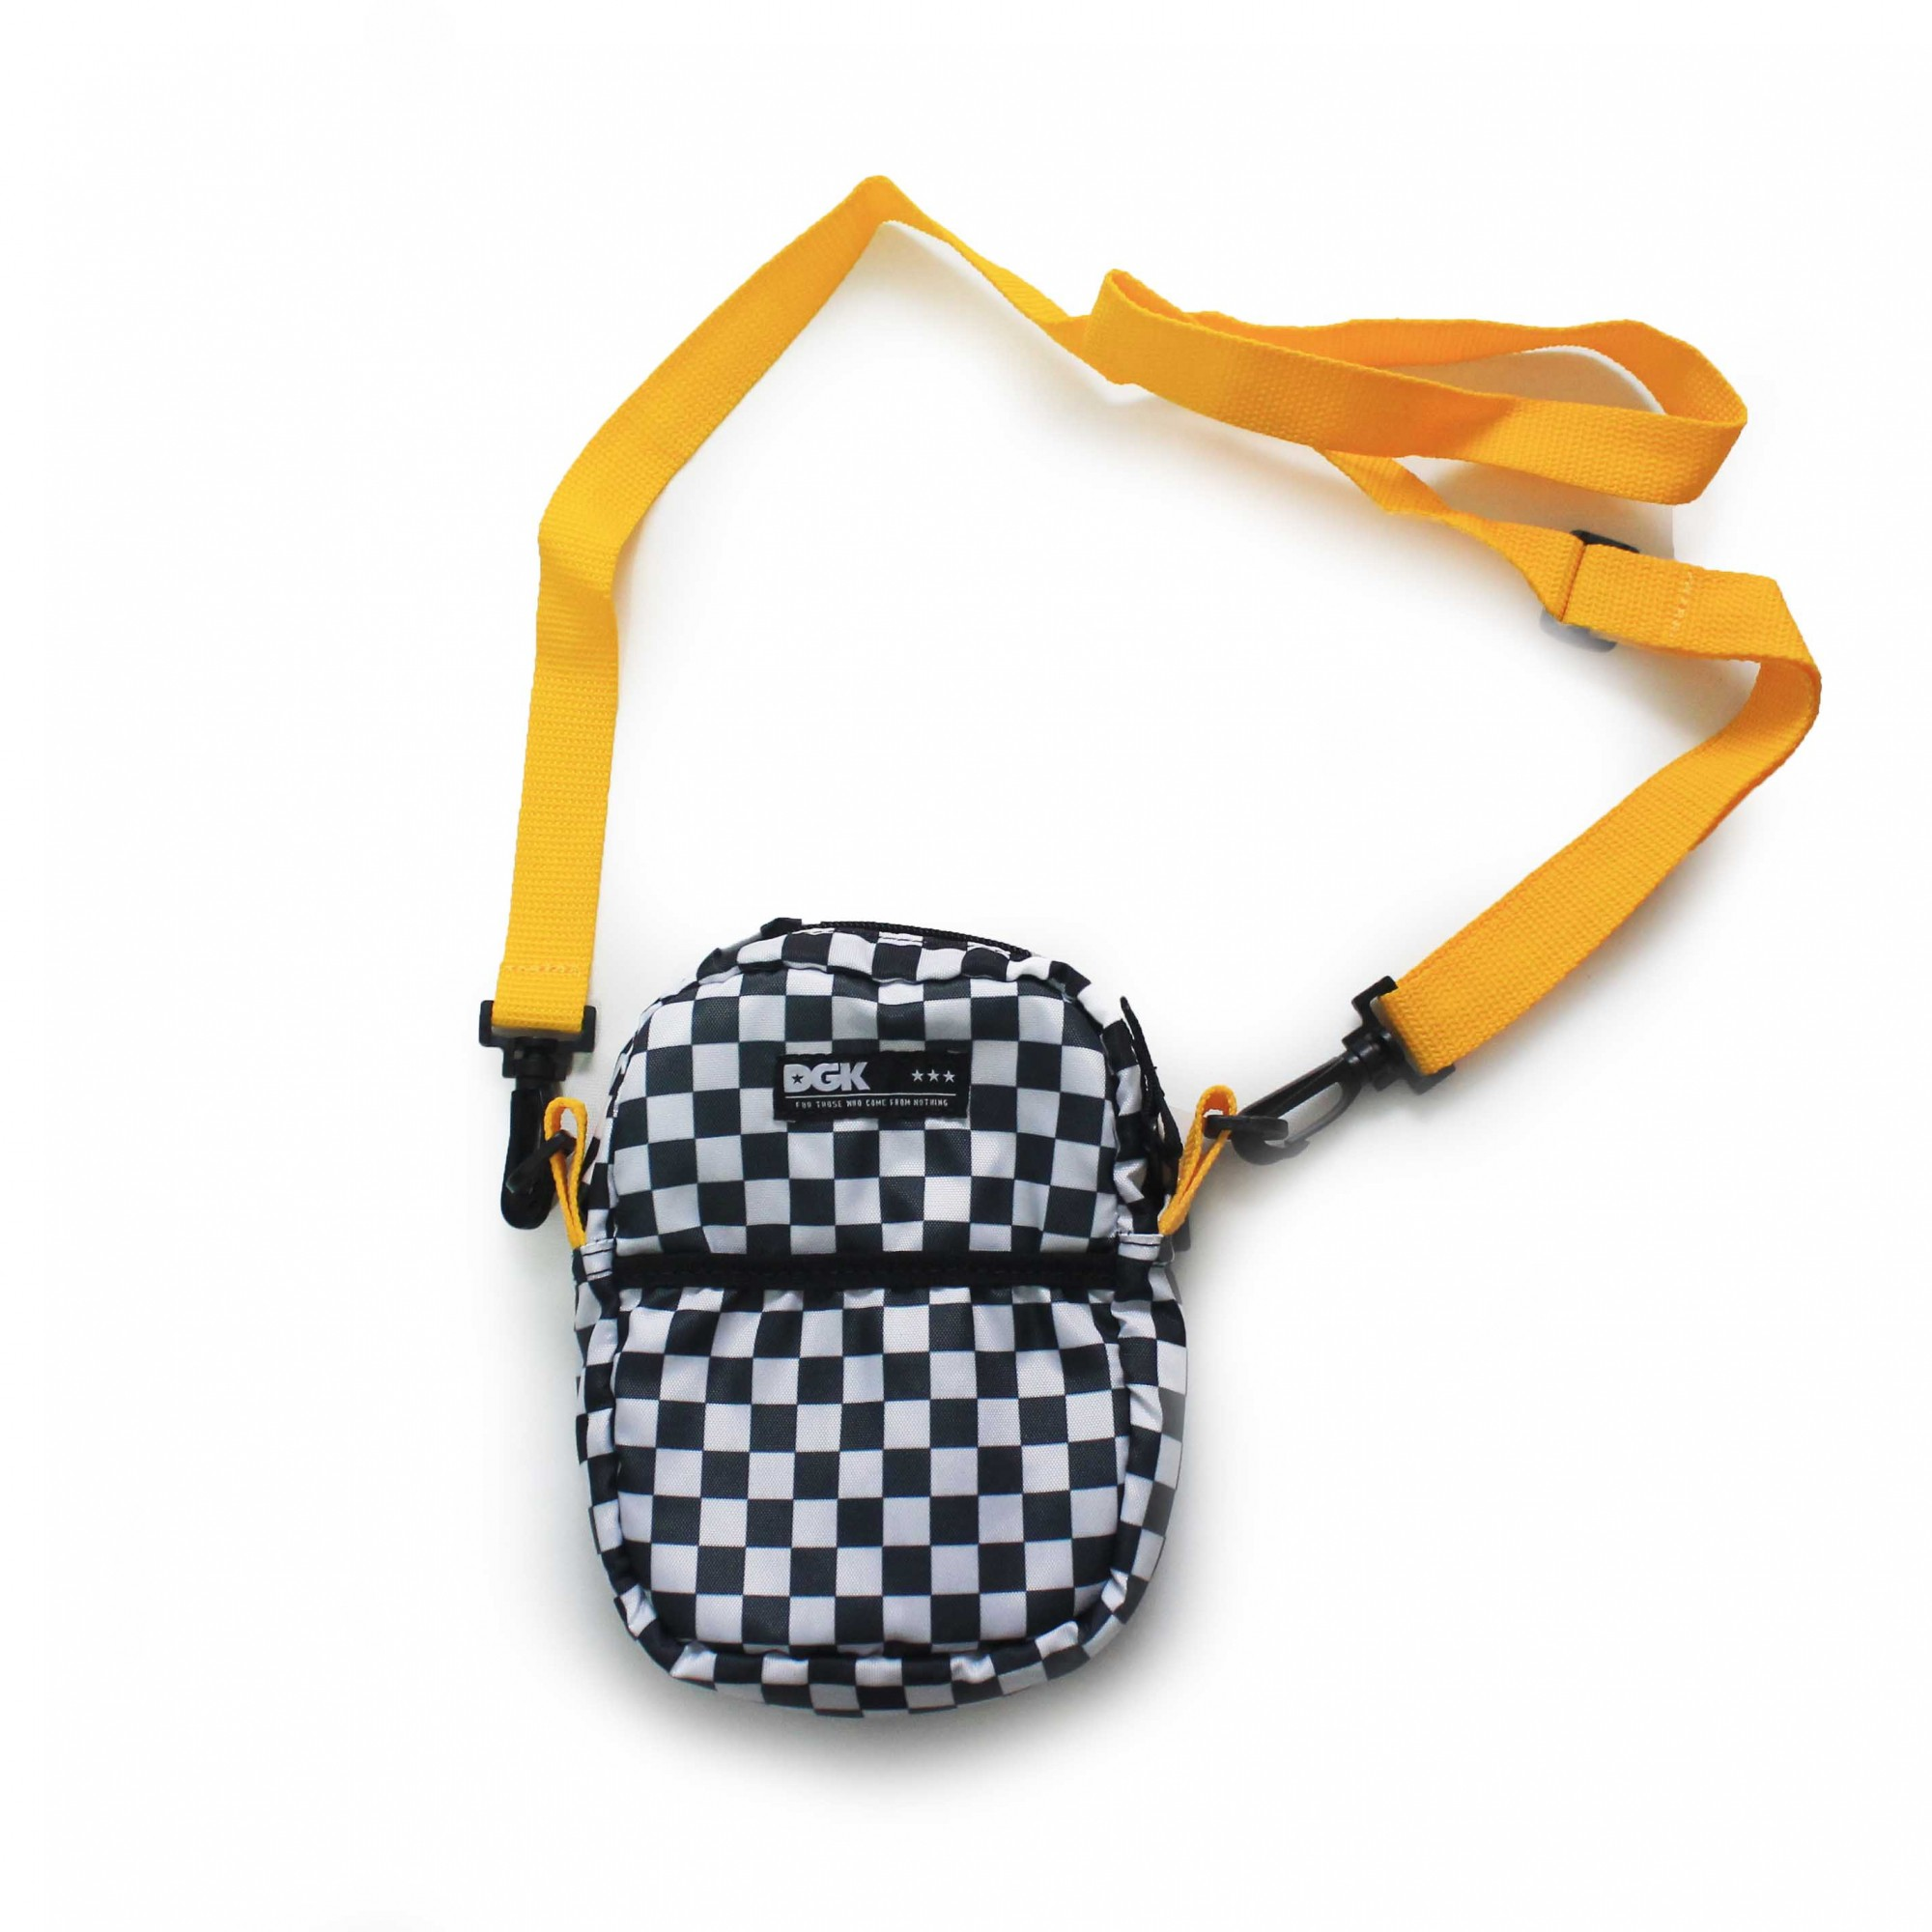 Shoulder Bag DGK Finish Line